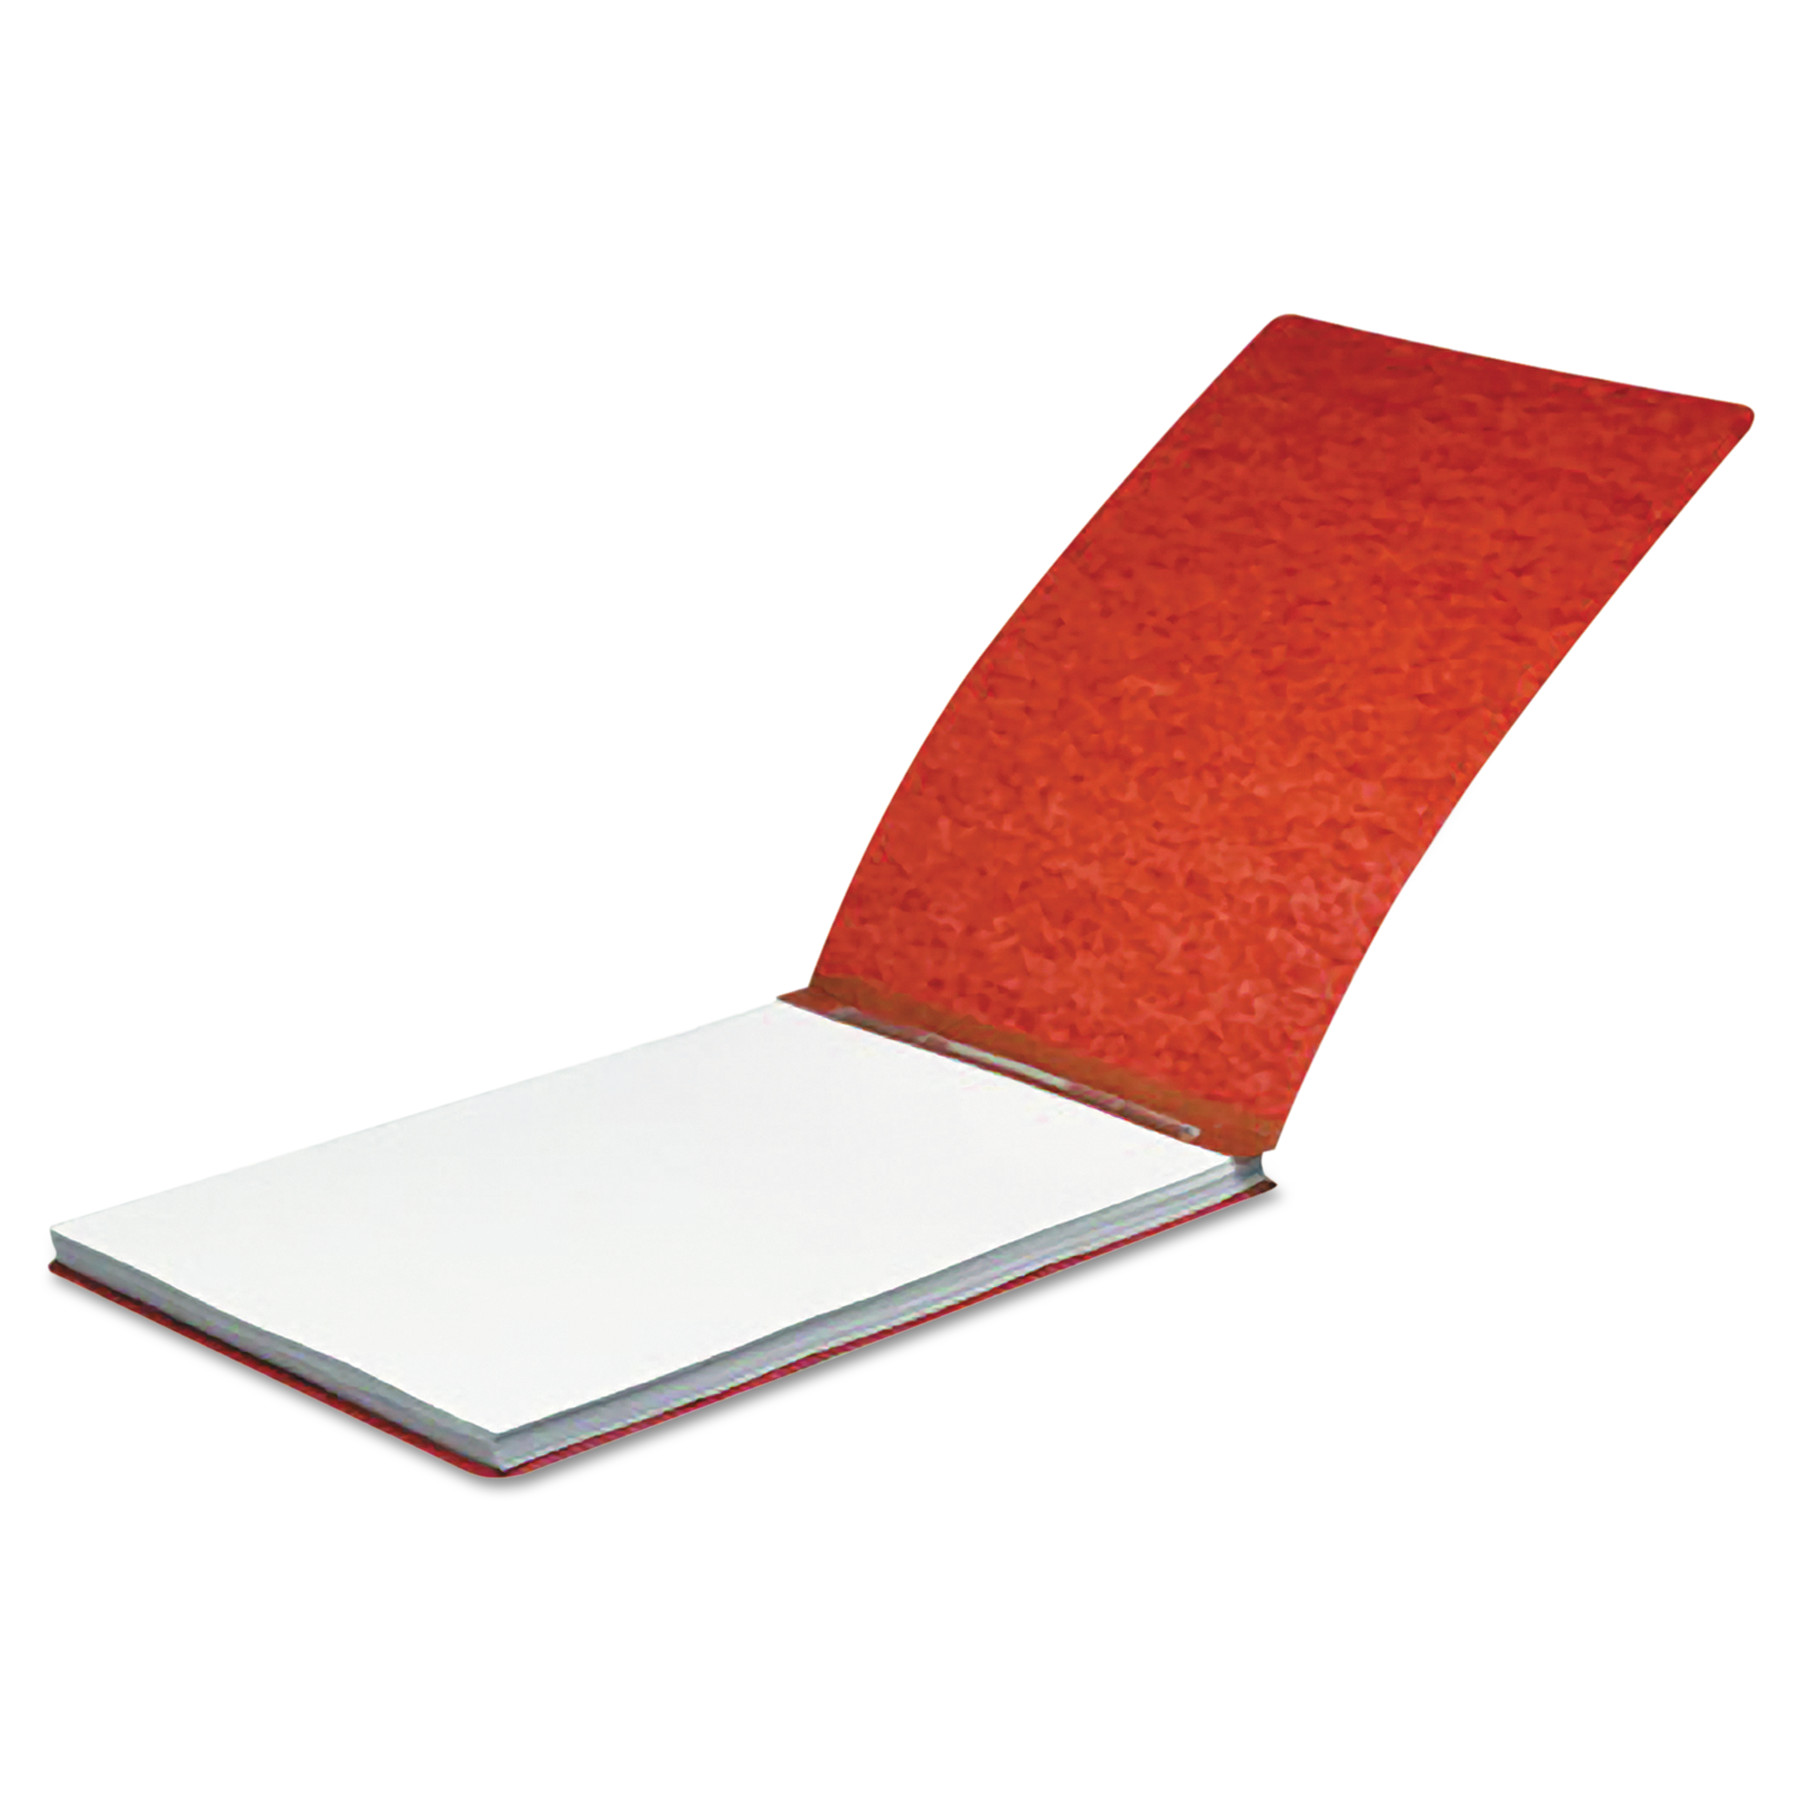 "ACCO Pressboard Report Cover, Spring Clip, Letter, 2"" Capacity, Earth Red by ACCO BRANDS, INC."